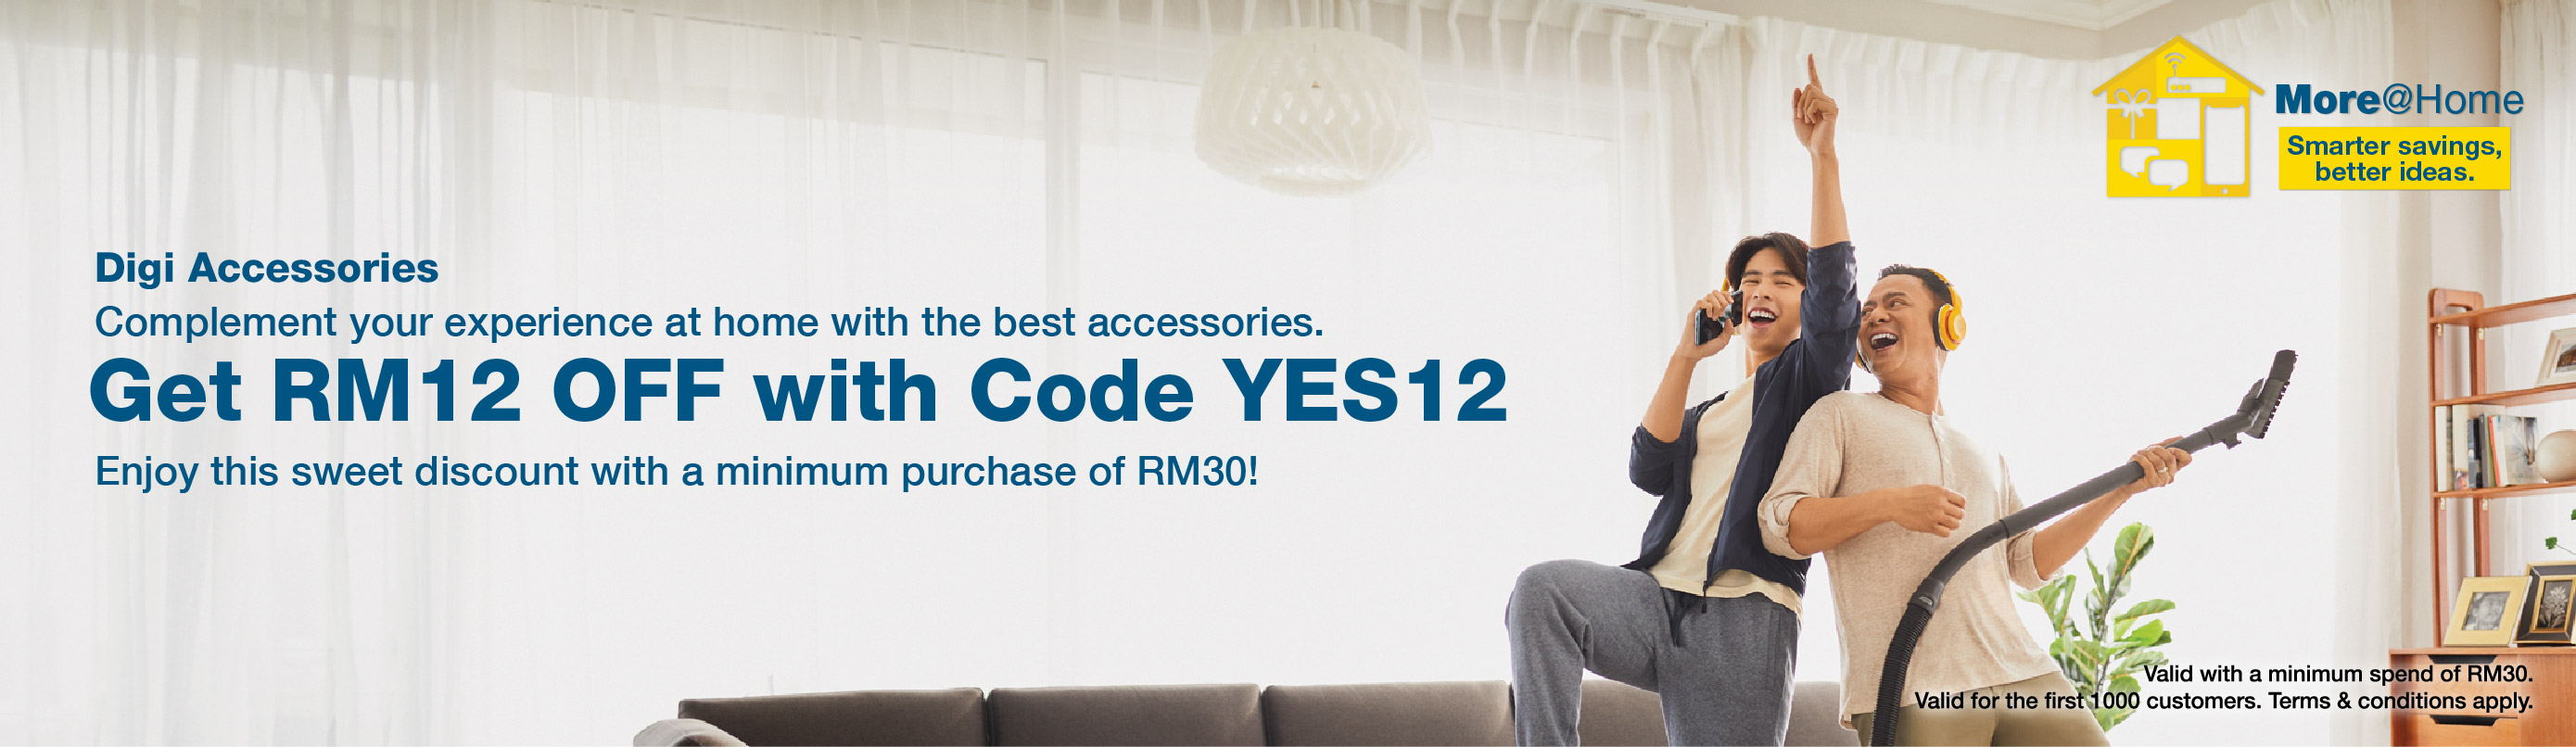 Get RM12 off with code YES12